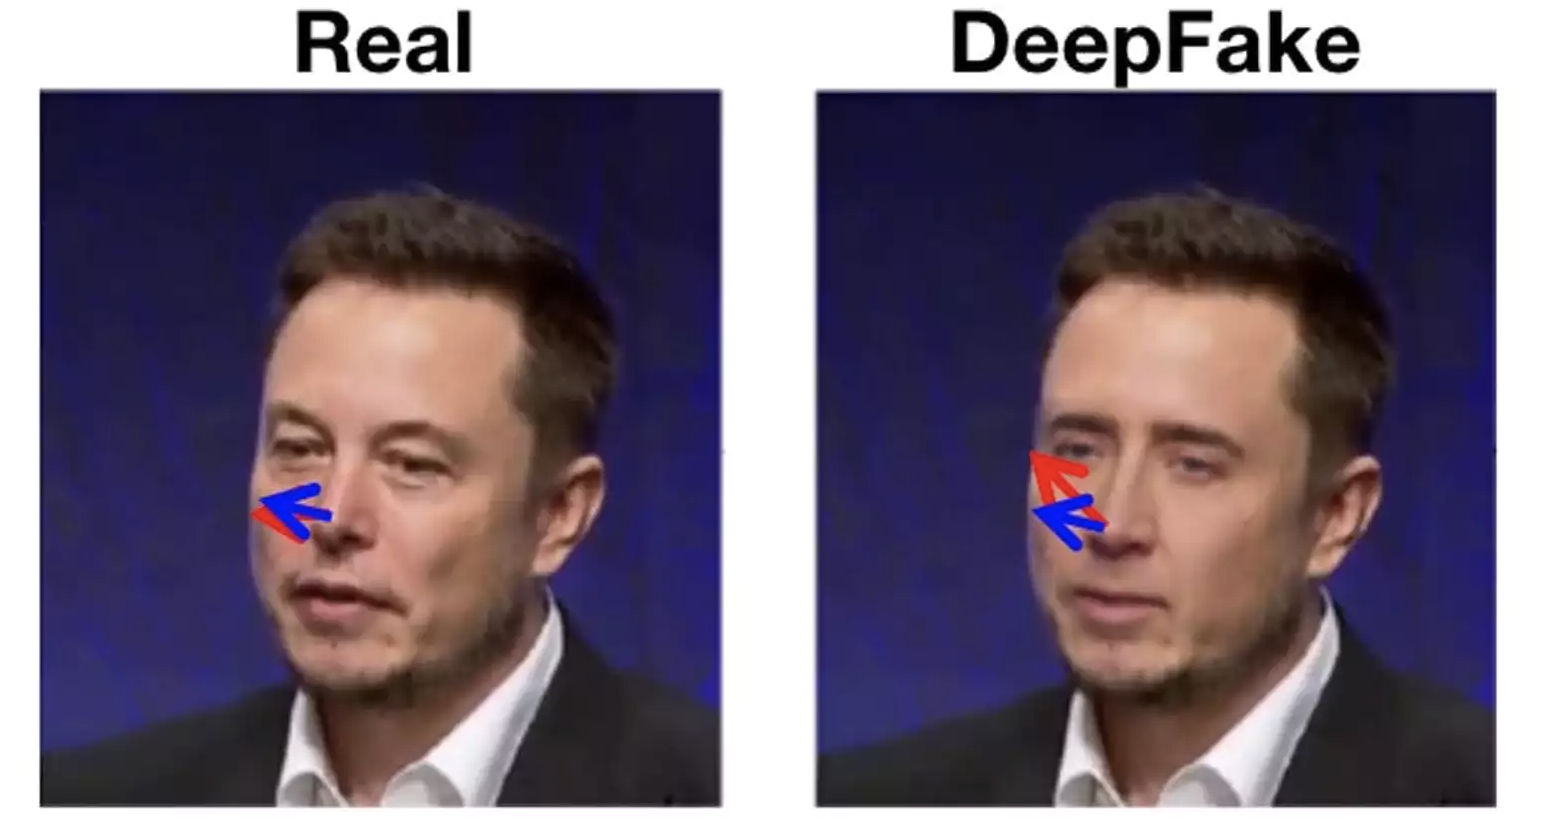 When a computer puts Nicolas Cage's face on Elon Musk's head, it may not line up the face and the head correctly. Siwei Lyu, CC BY-ND